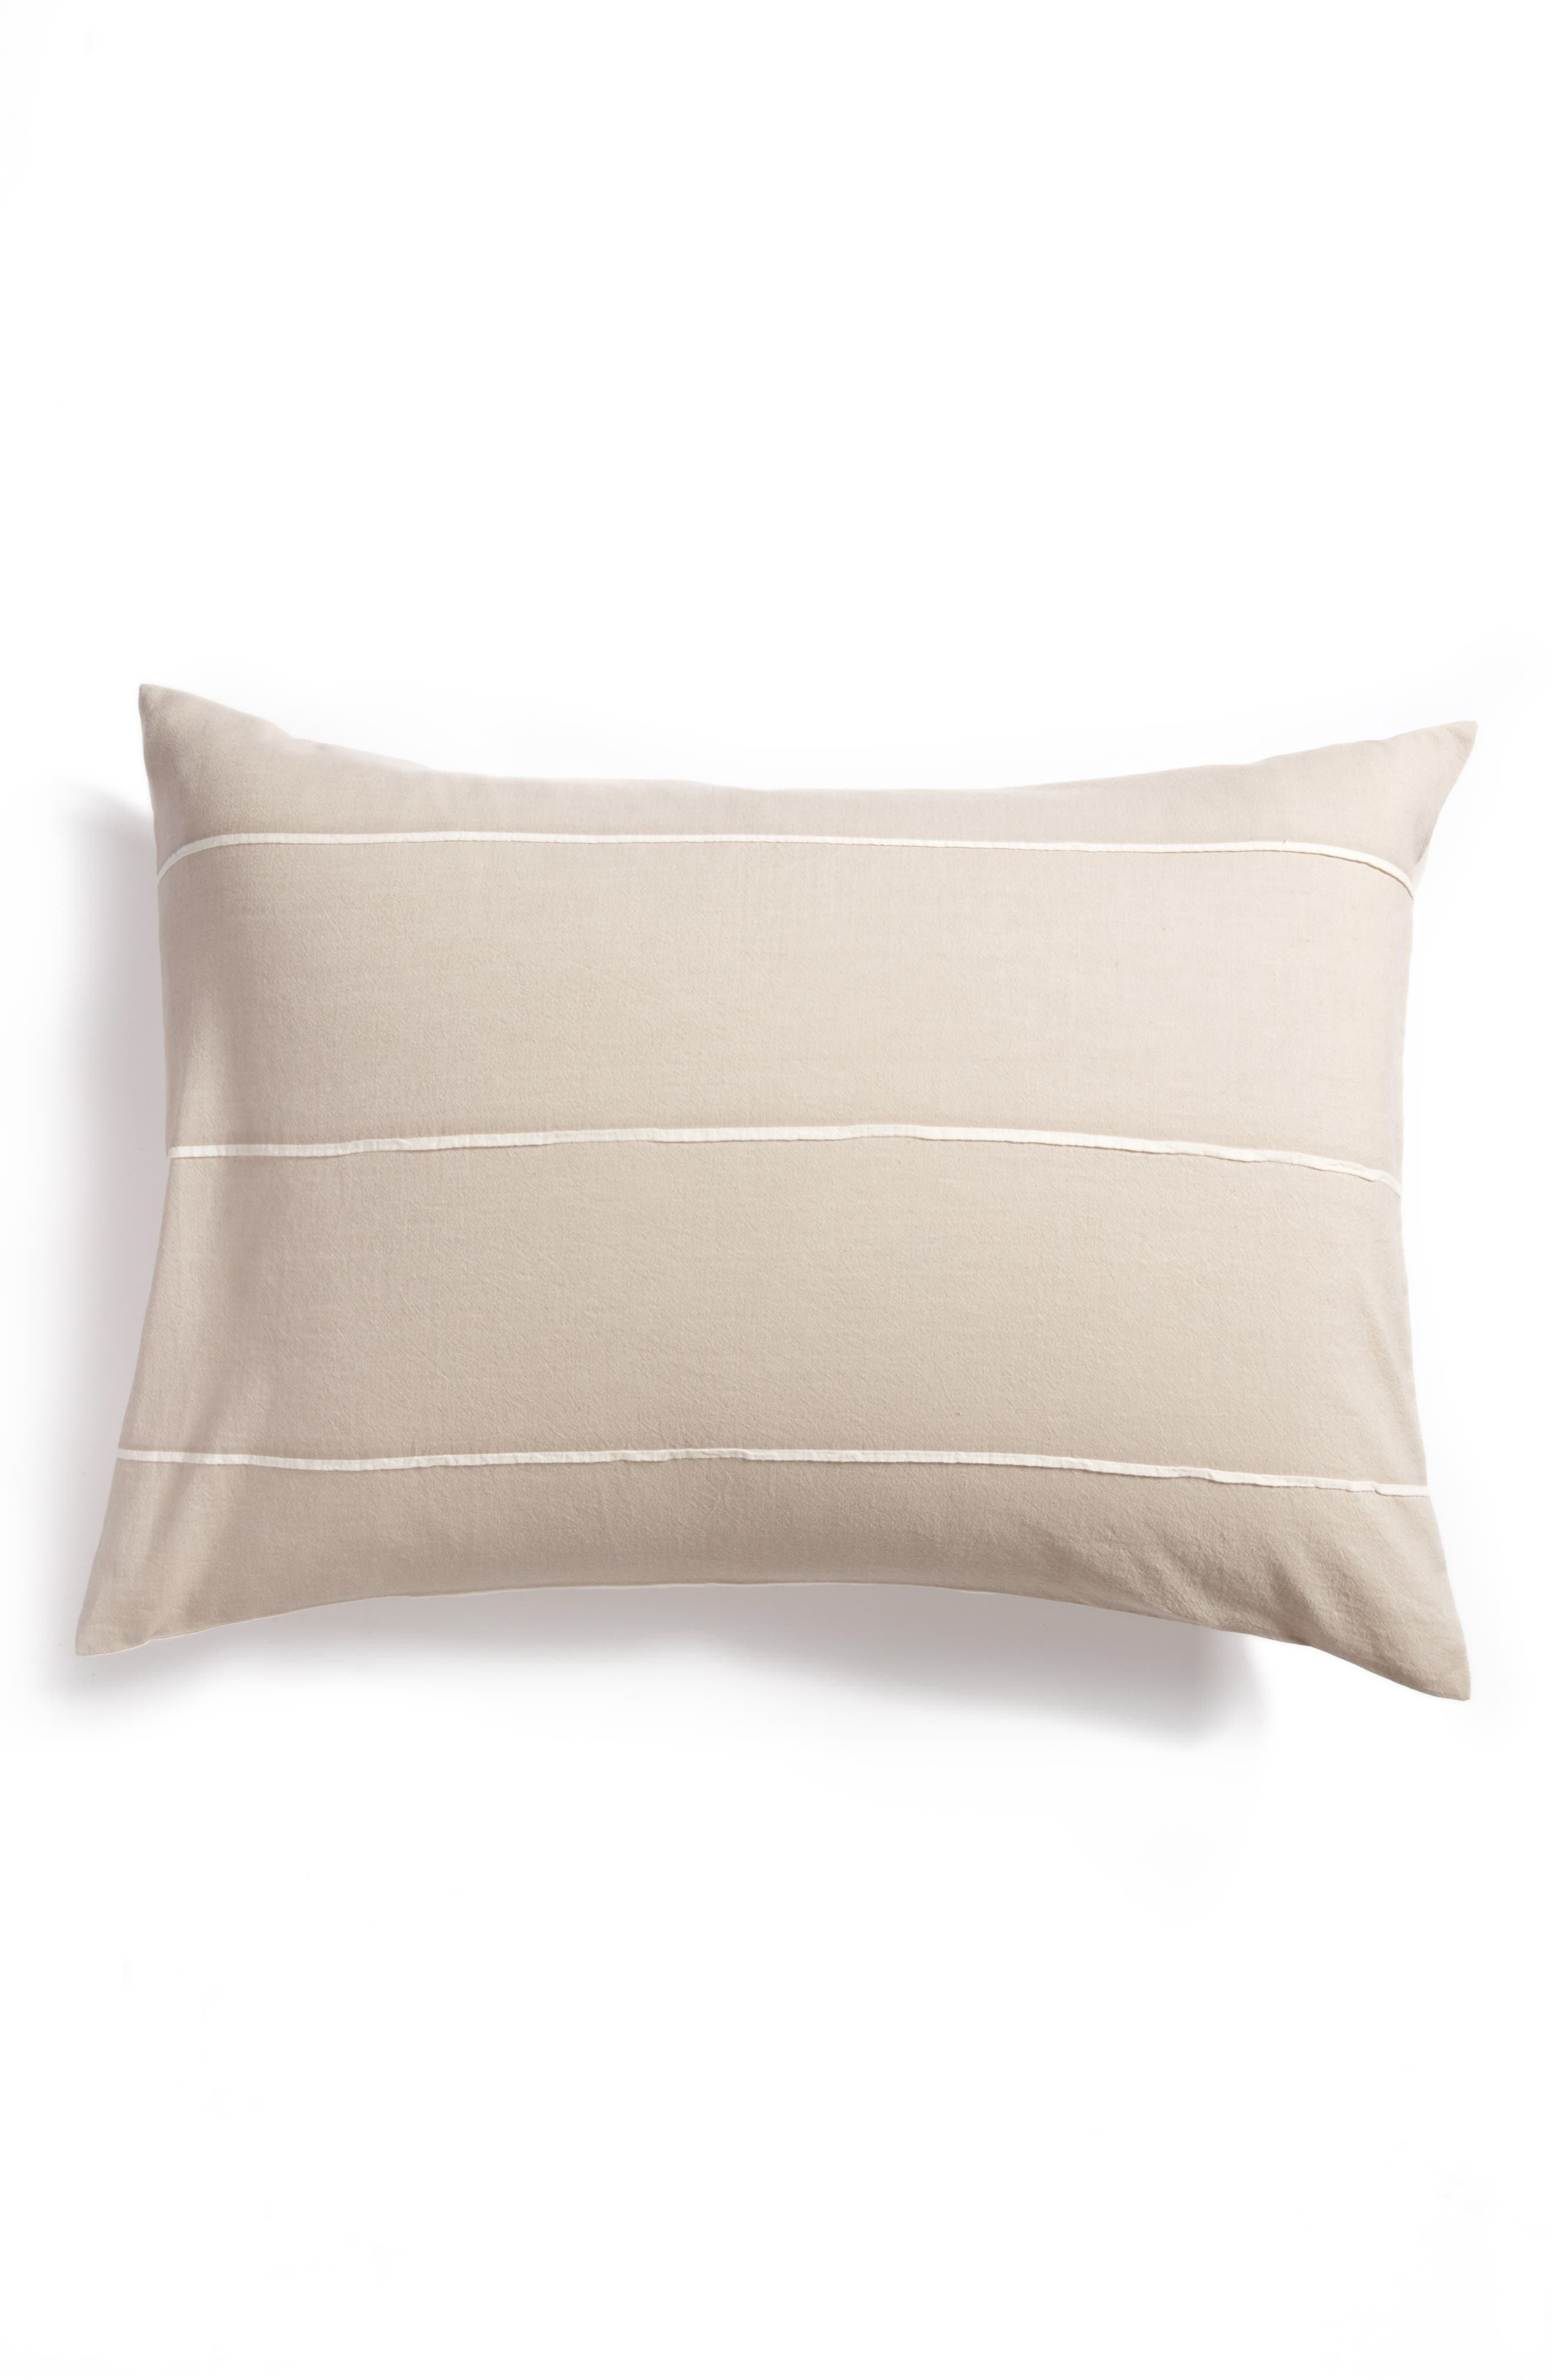 Textured Stripe Pillow Sham,                         Main,                         color, 020